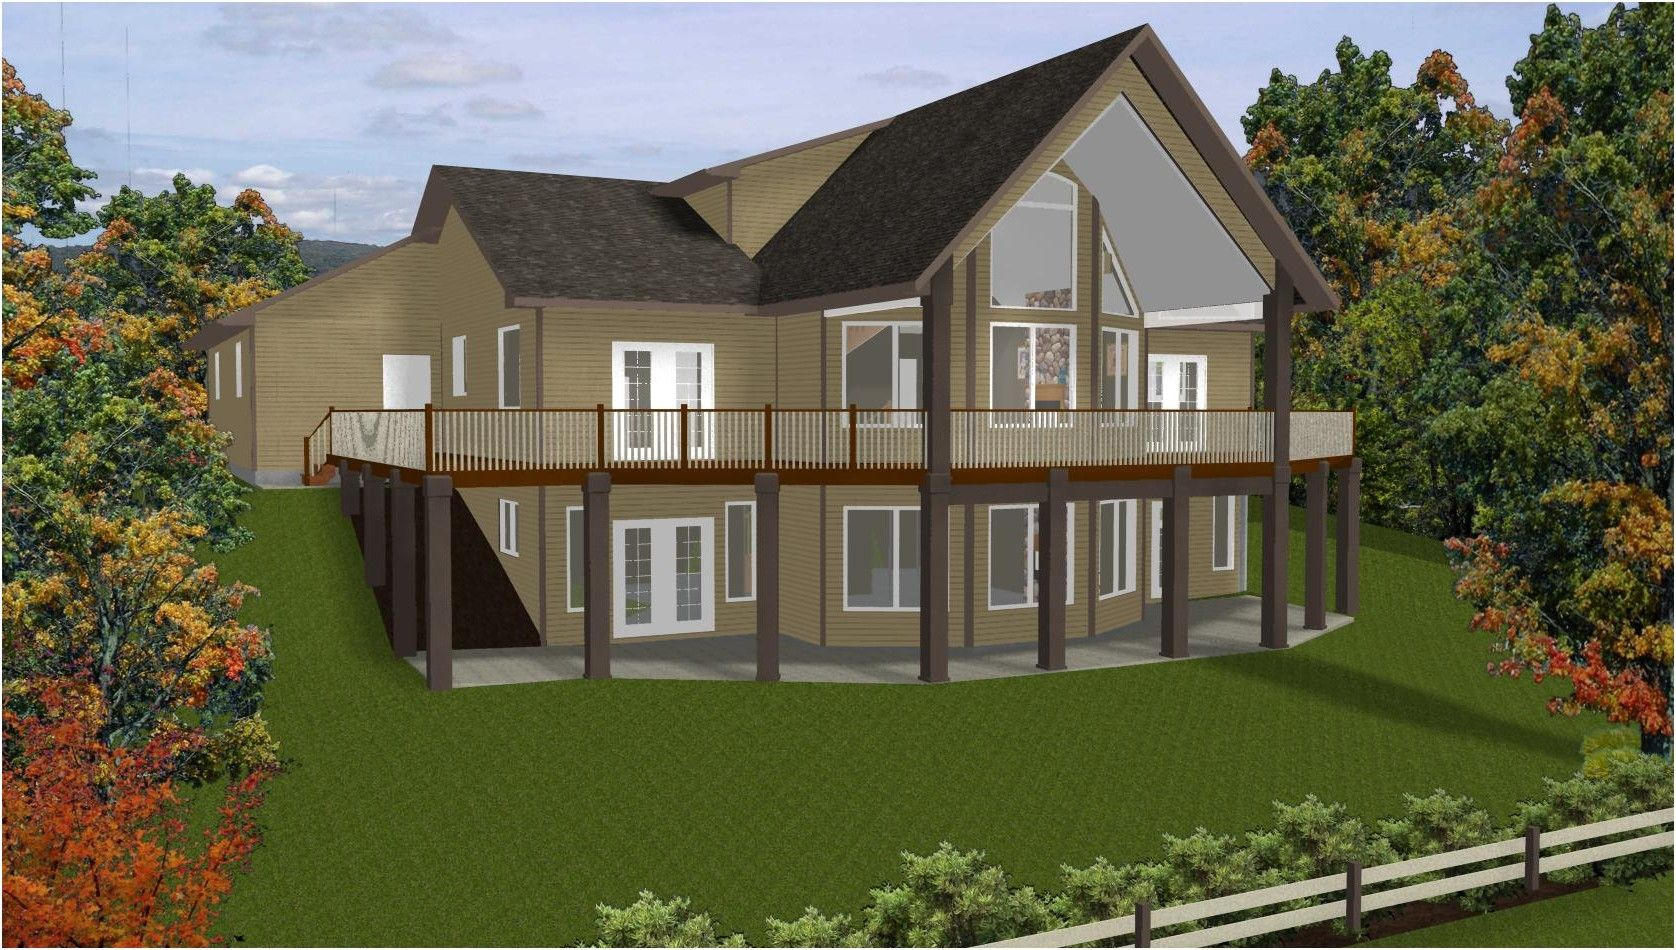 New 1 Story House Plans with Walkout Basement Hidup